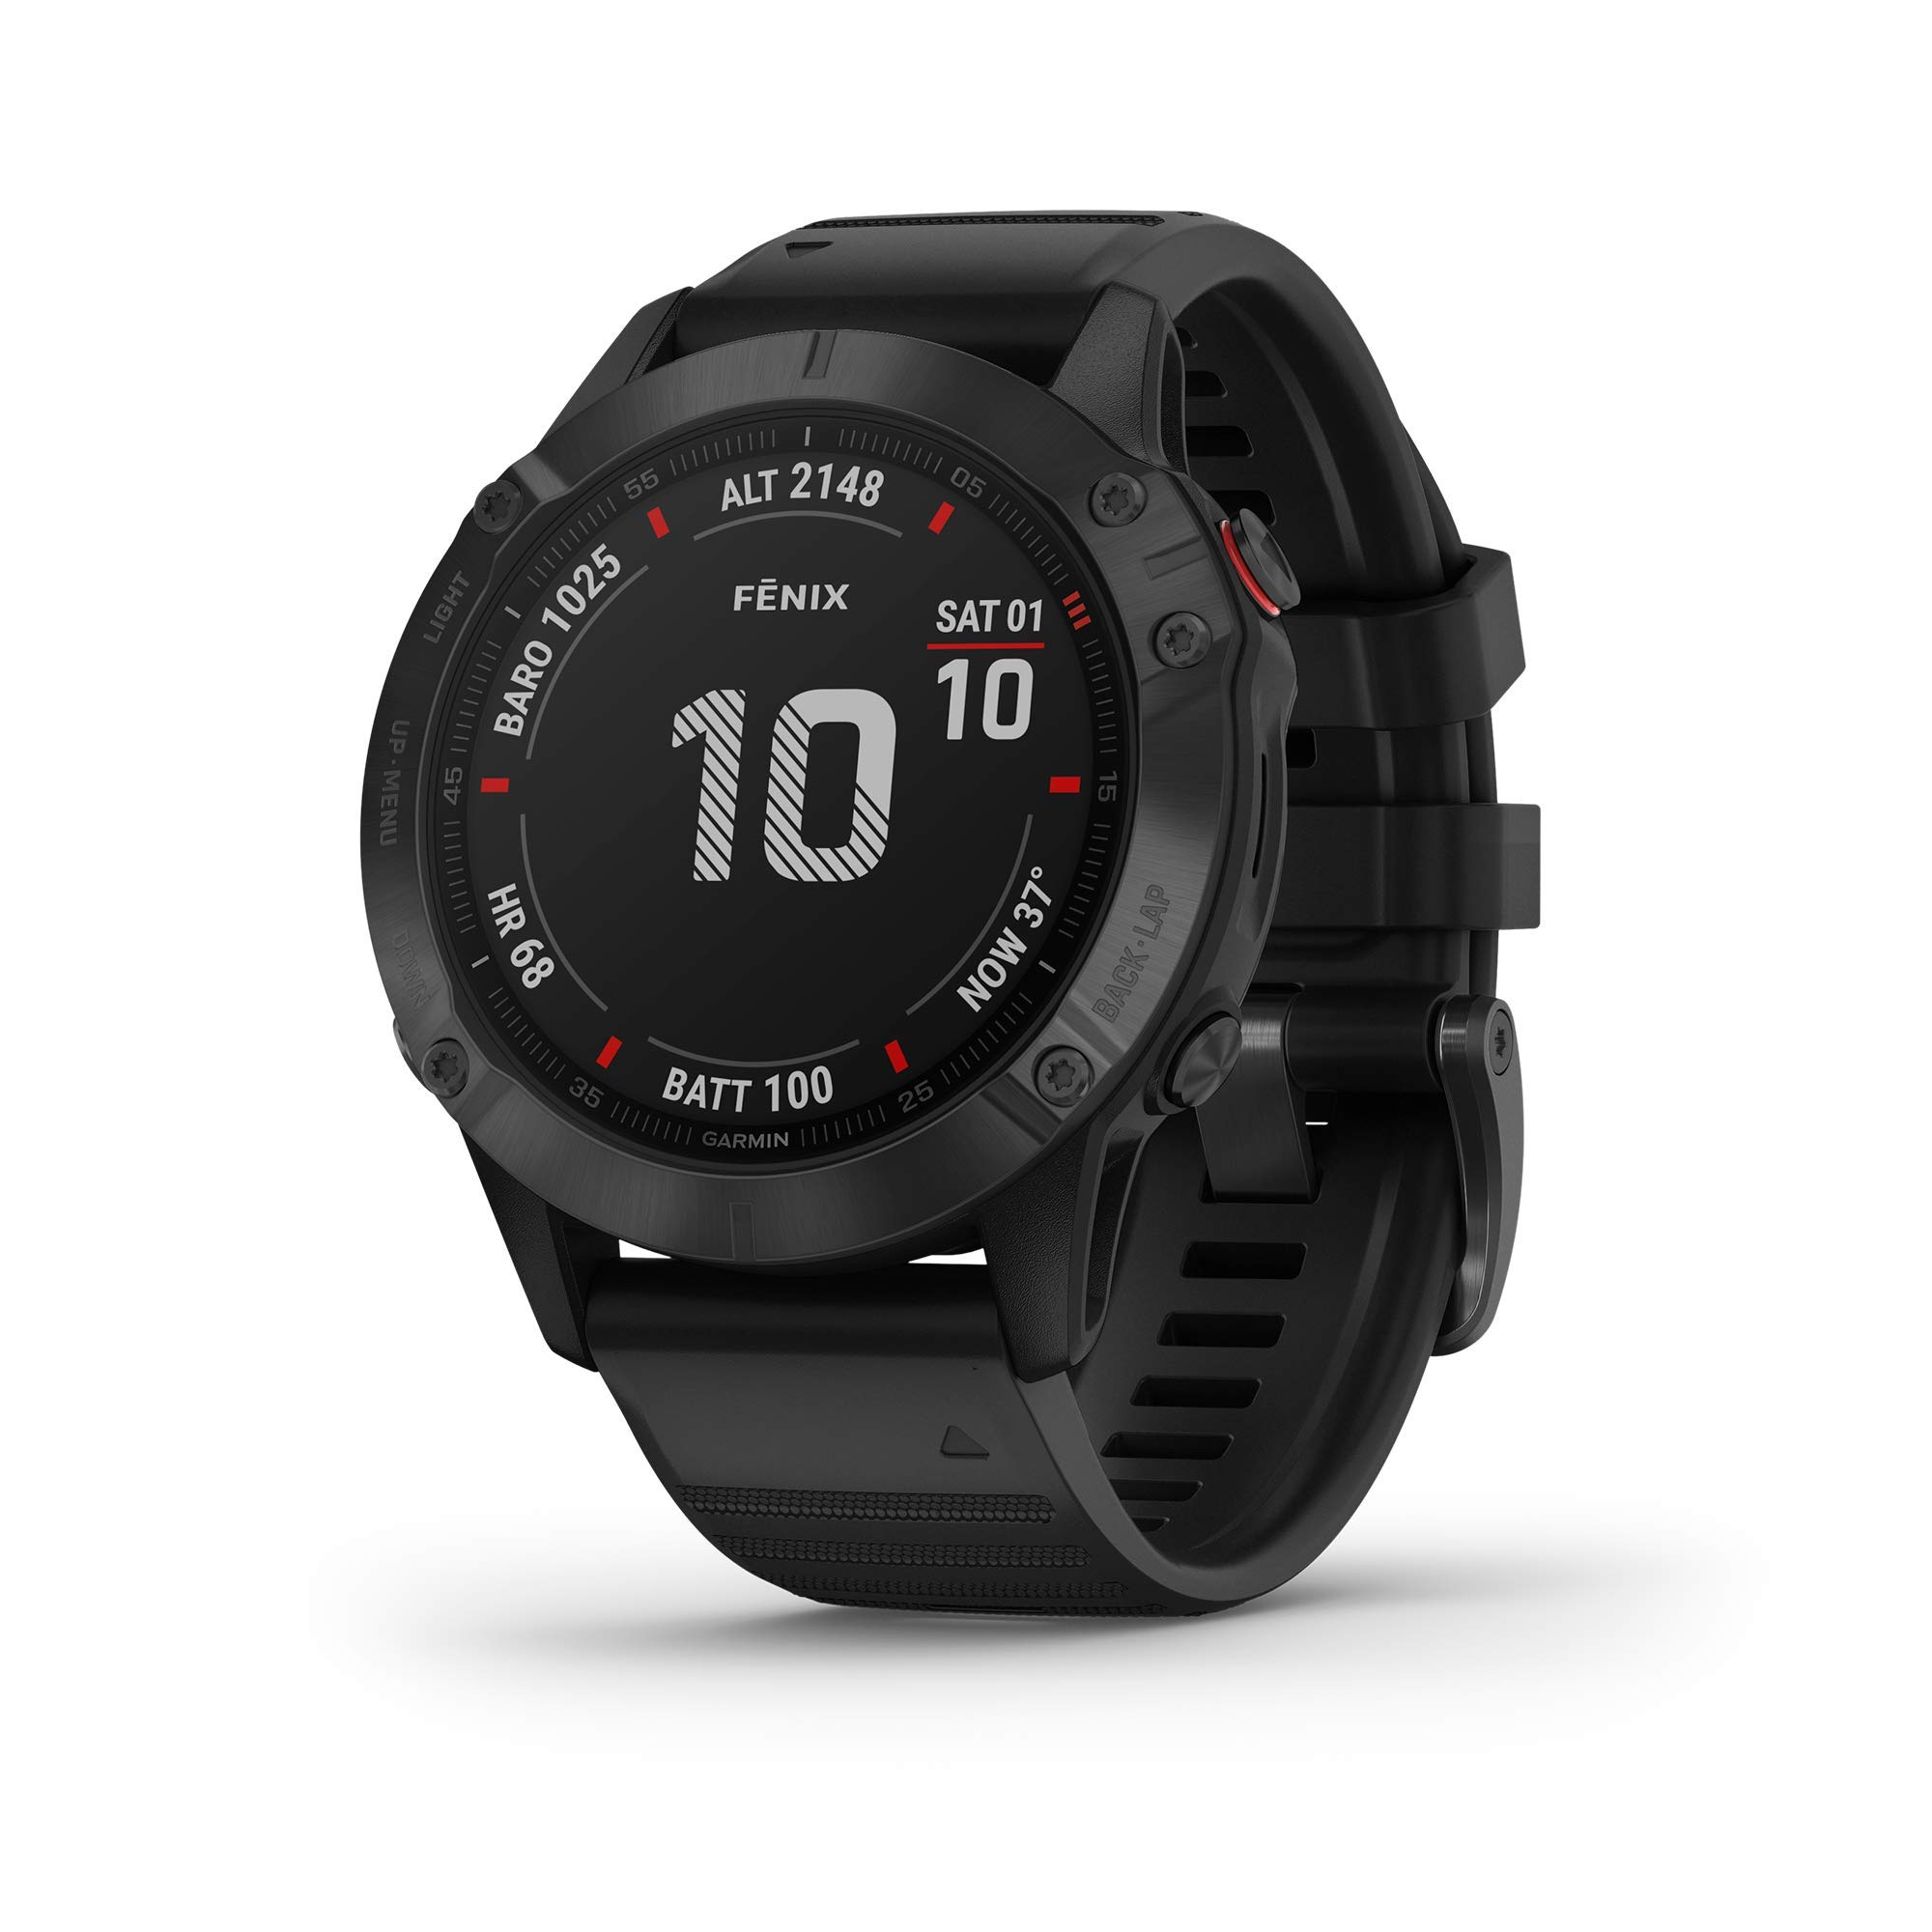 Garmin Fenix 6 Pro, Premium Multisport GPS Watch, Features Mapping, Music, Grade-Adjusted Pace Guidance and Pulse Ox Sensors, Black (Renewed) by Garmin